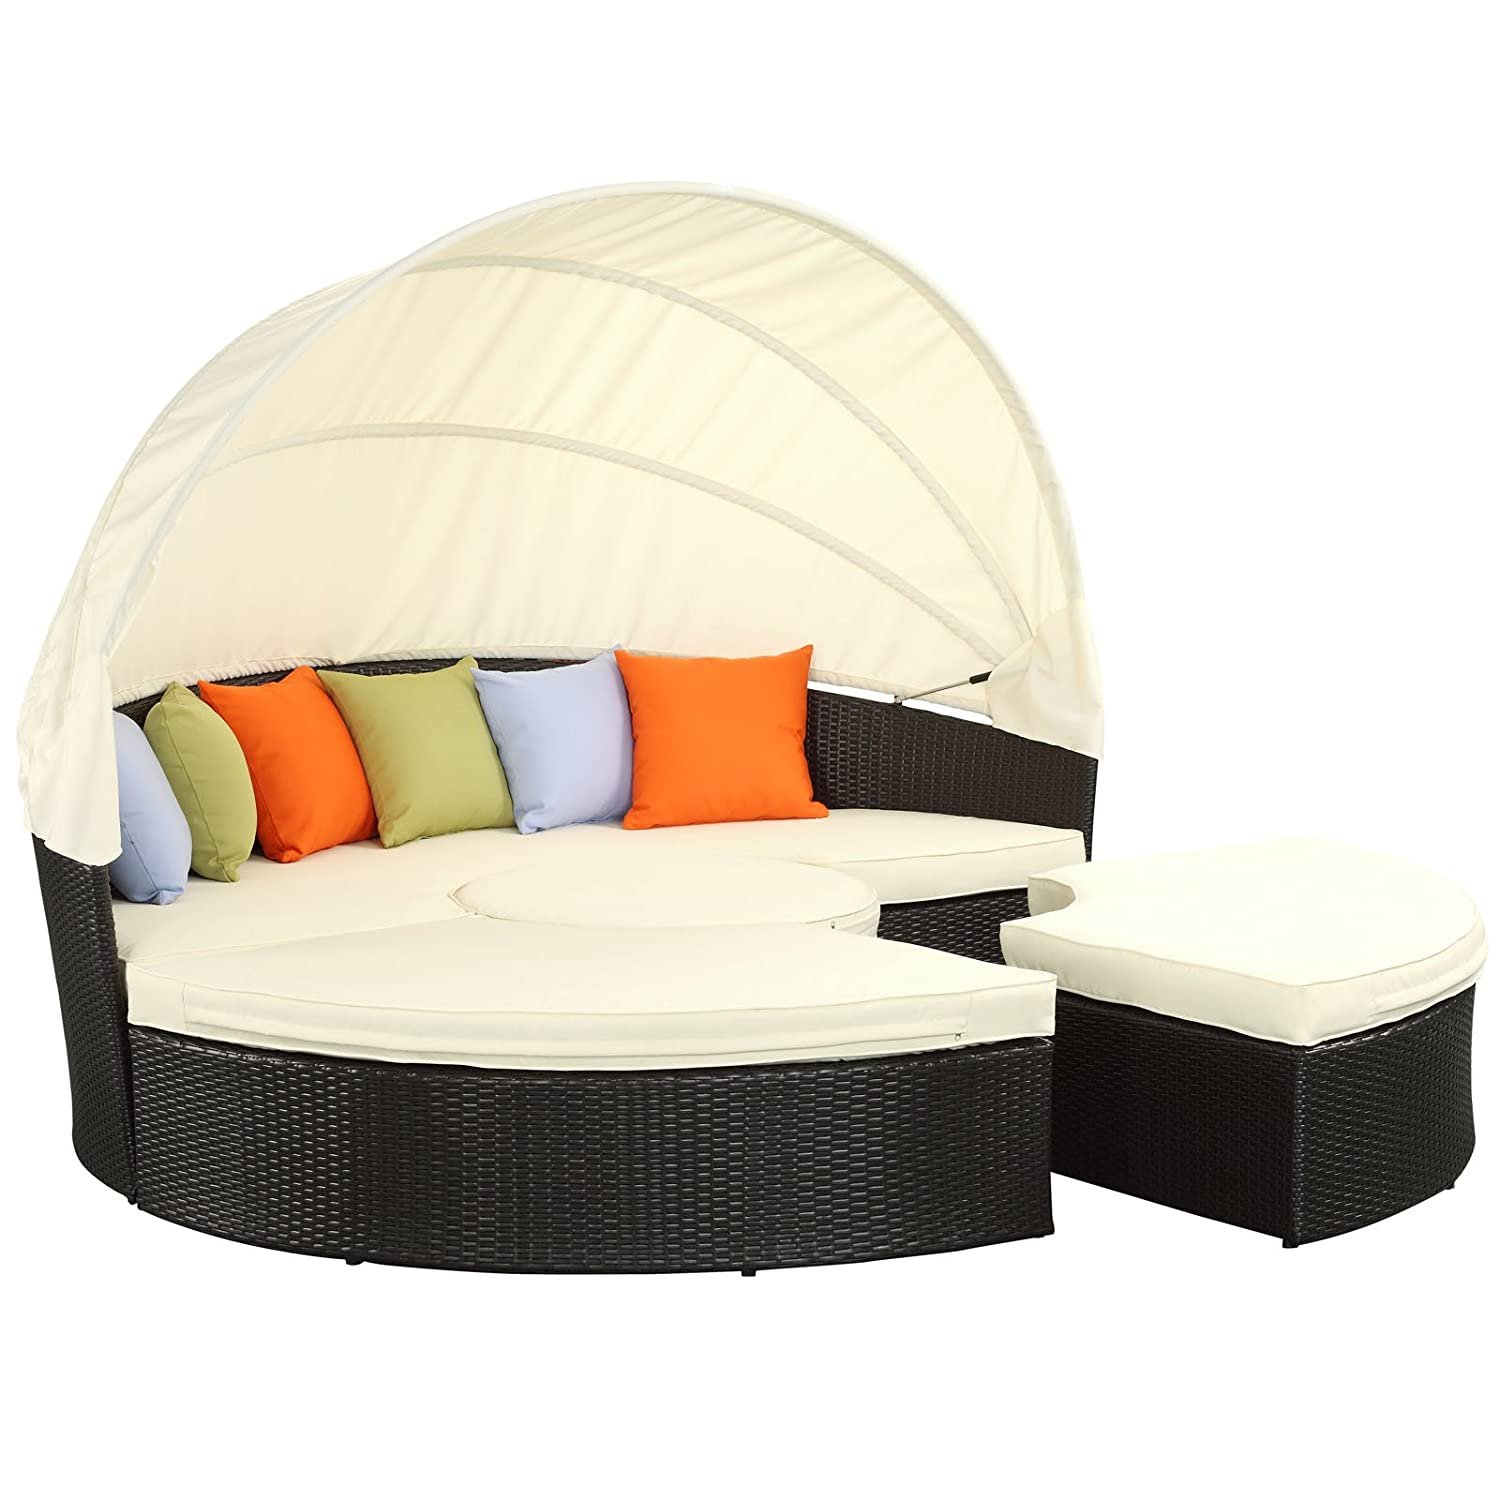 Amazon.com : Modway Quest Circular Outdoor Wicker Rattan Patio Daybed With  Canopy In Espresso White : Outdoor And Patio Furniture Sets : Garden U0026  Outdoor